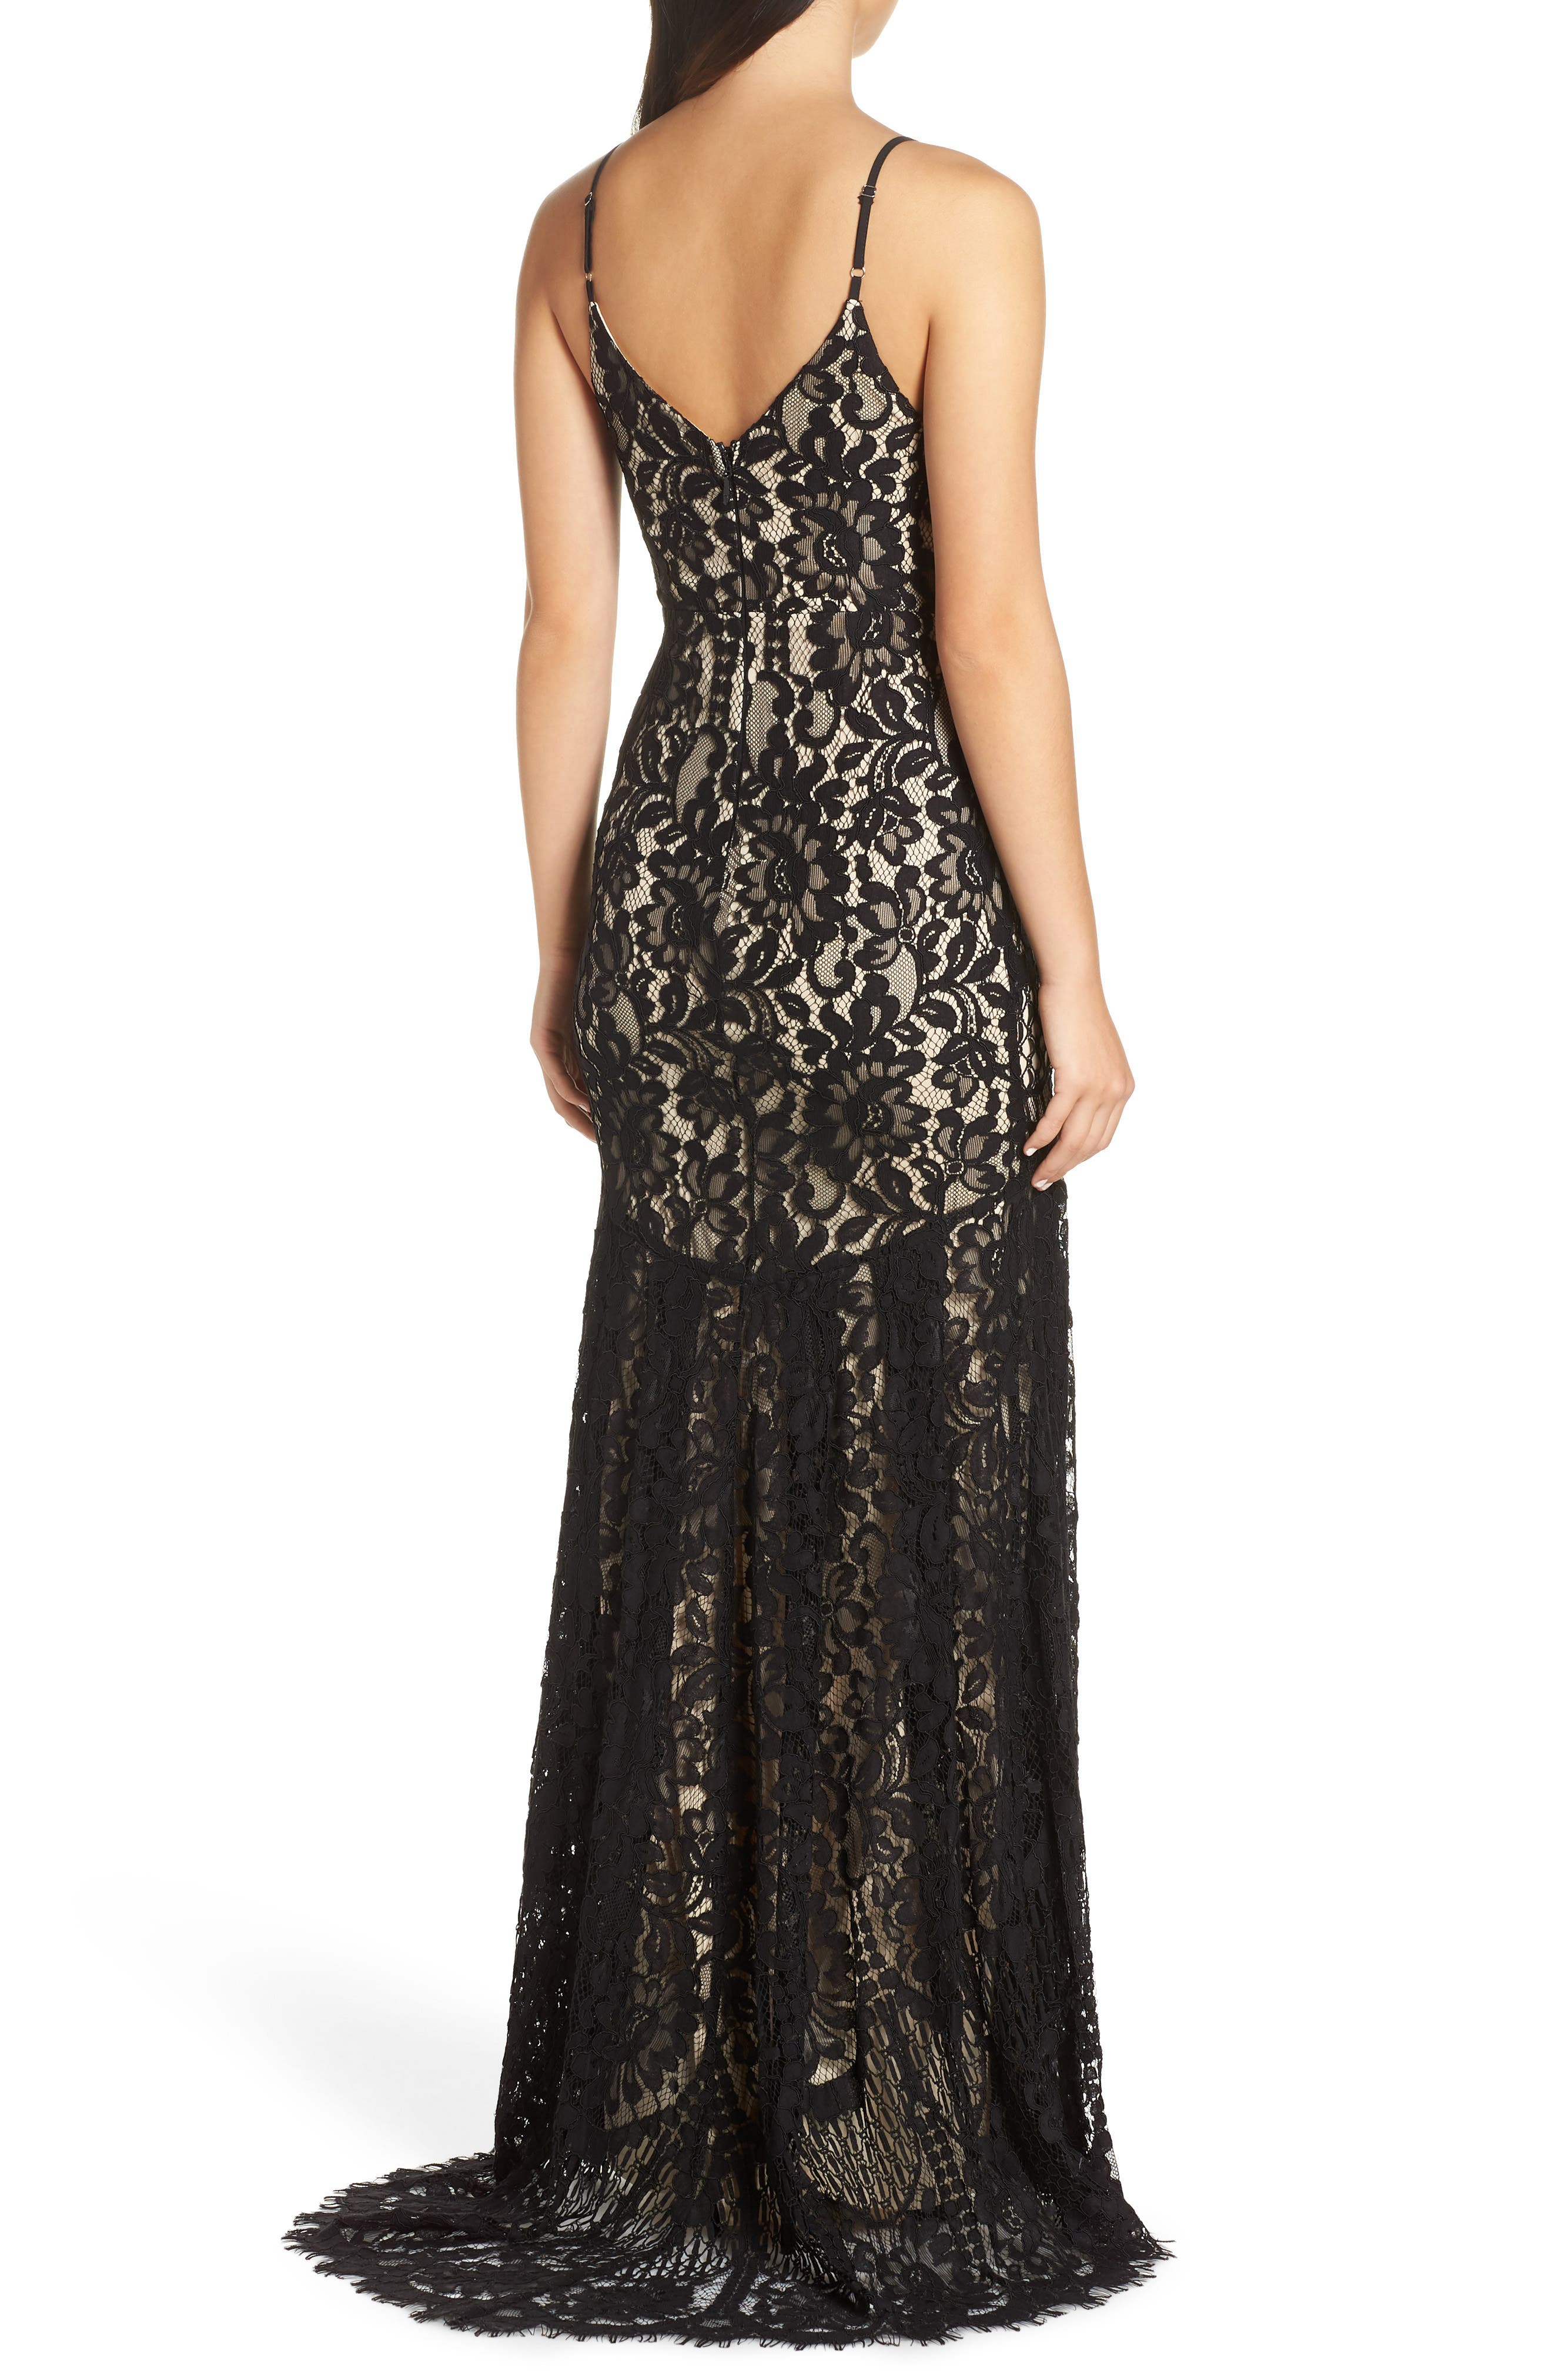 LULUS, Flynn Lace Gown with Train, Alternate thumbnail 2, color, BLACK/ NUDE